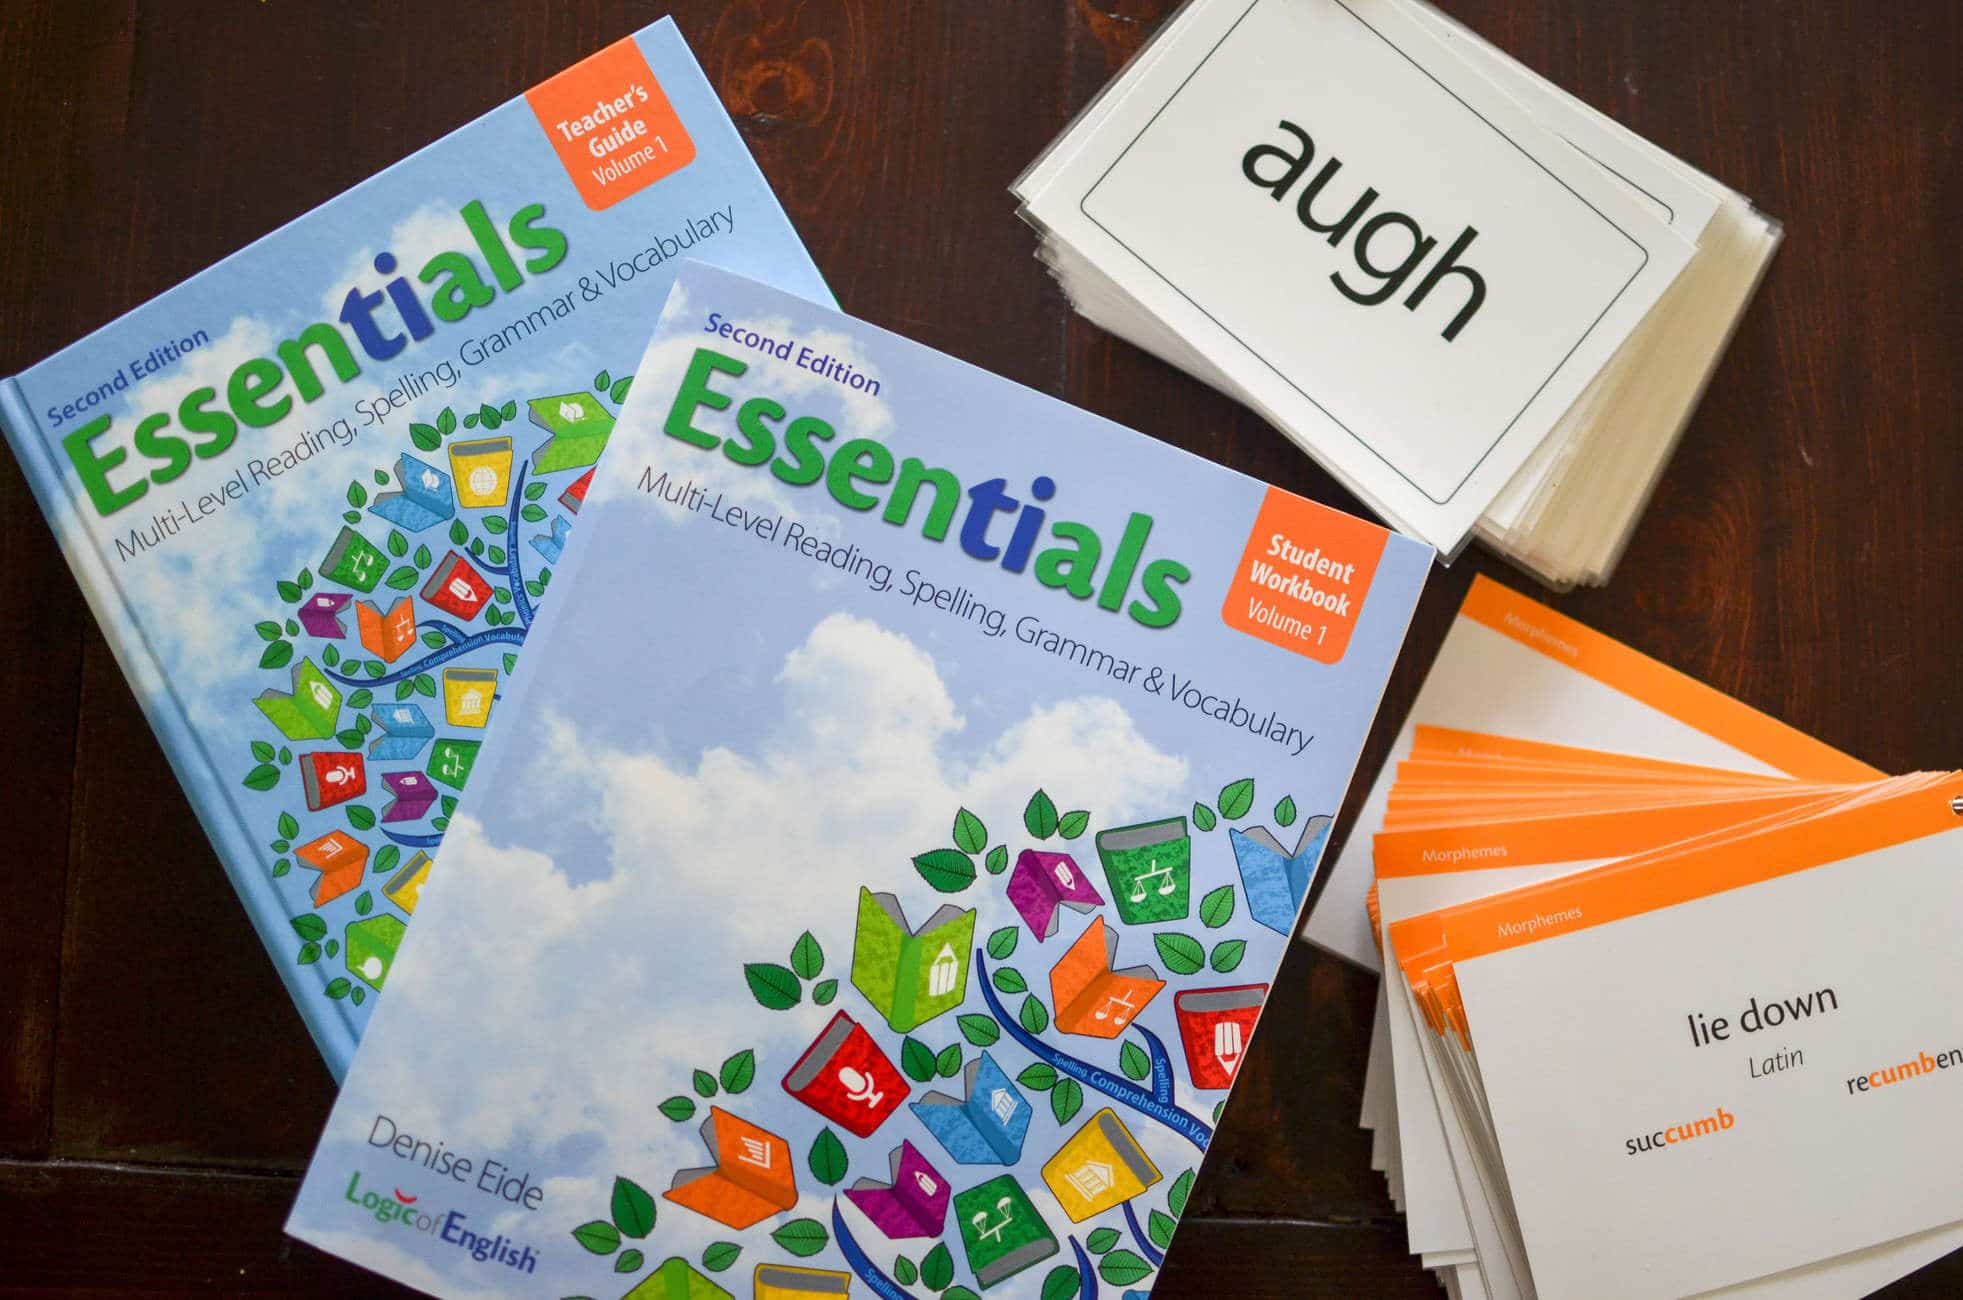 What's New? Logic of English Essentials Second Edition Review and Giveaway!